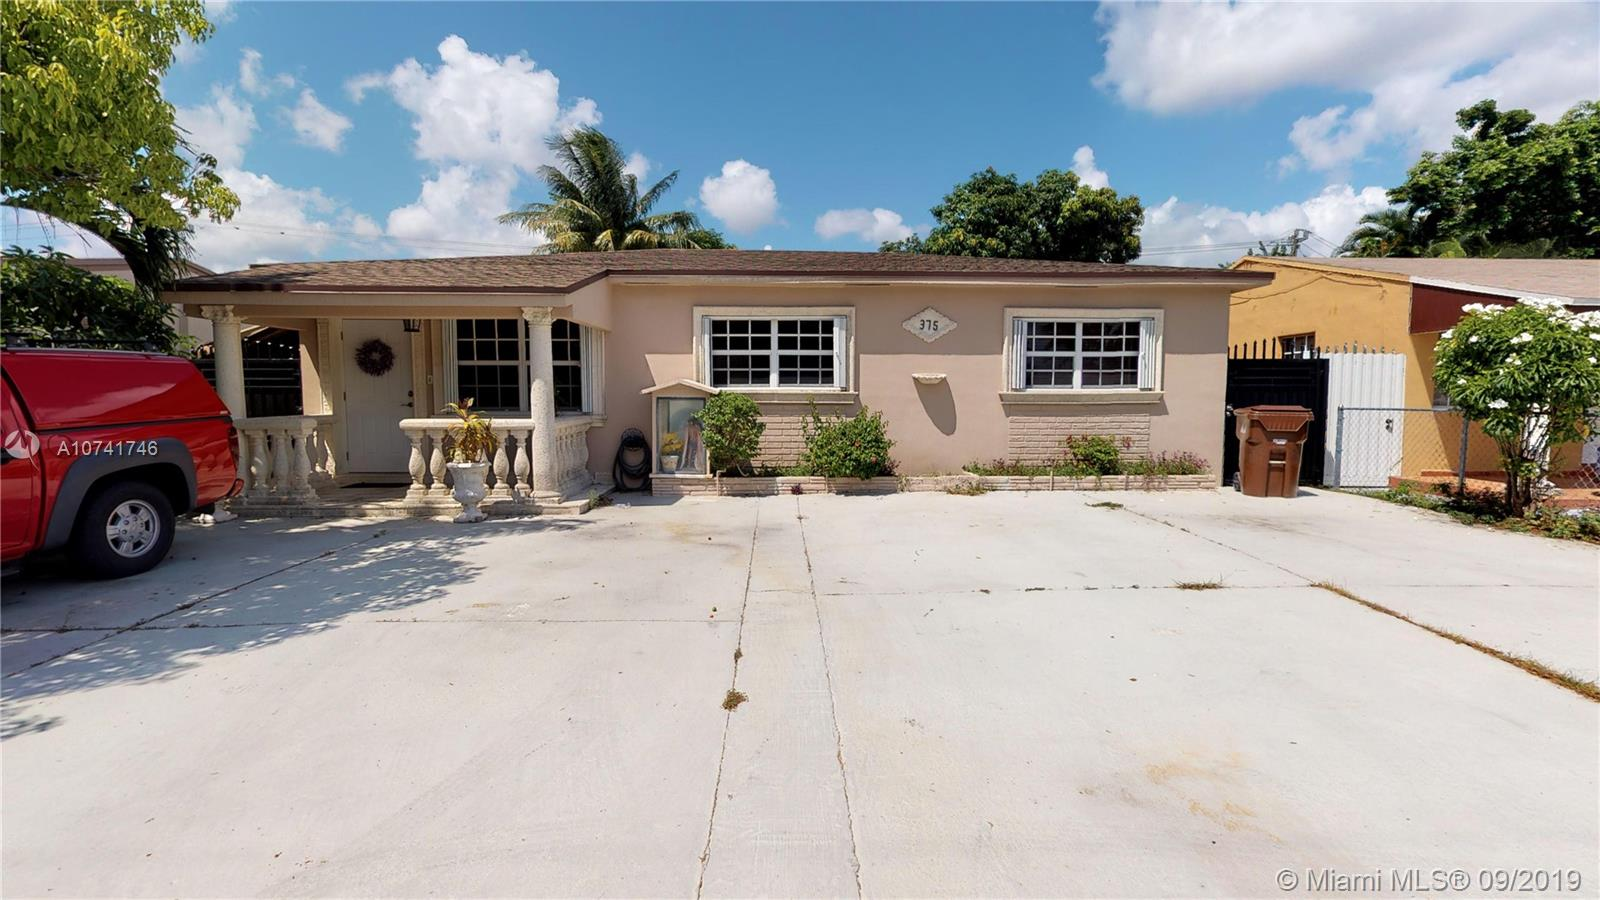 HUGE REDUCTION MOTIVATED SELLER!Remarkable, Unique 4/2 Property + LEGAL 2/2 Guest/ in-laws House In The Heart Of Hialeah. Huge kitchen with stainless steel appliances, granite countertops, tile flooring, detailed crown molding throughout. Main house is 4/2 and guest house a spacious 2/2. Outdoor screened in patio includes kitchen and laundry room. NEW ROOF, NEW A/C, accordion shutters on all windows to keep insurance low. Beautiful backyard with lush garden, and large covered sitting area. Driveway spacious enough tp fit up 8 cars. Centrally located in the Heart Of Hialeah minutes from Amelia Earhart Park, right off East 49th st. House is priced to sell fast!.